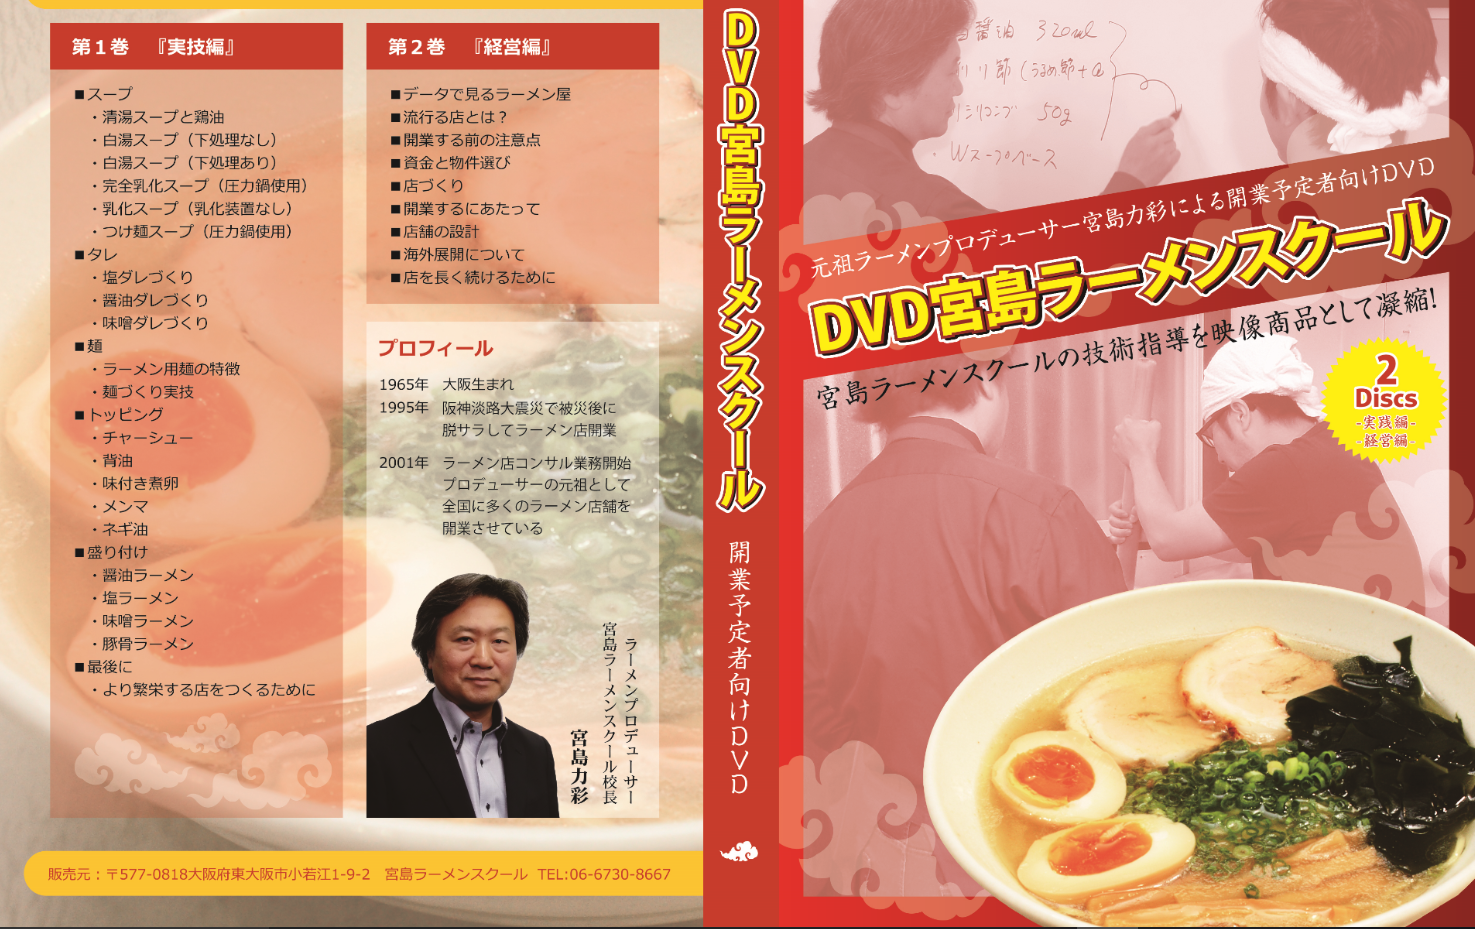 dvd_package